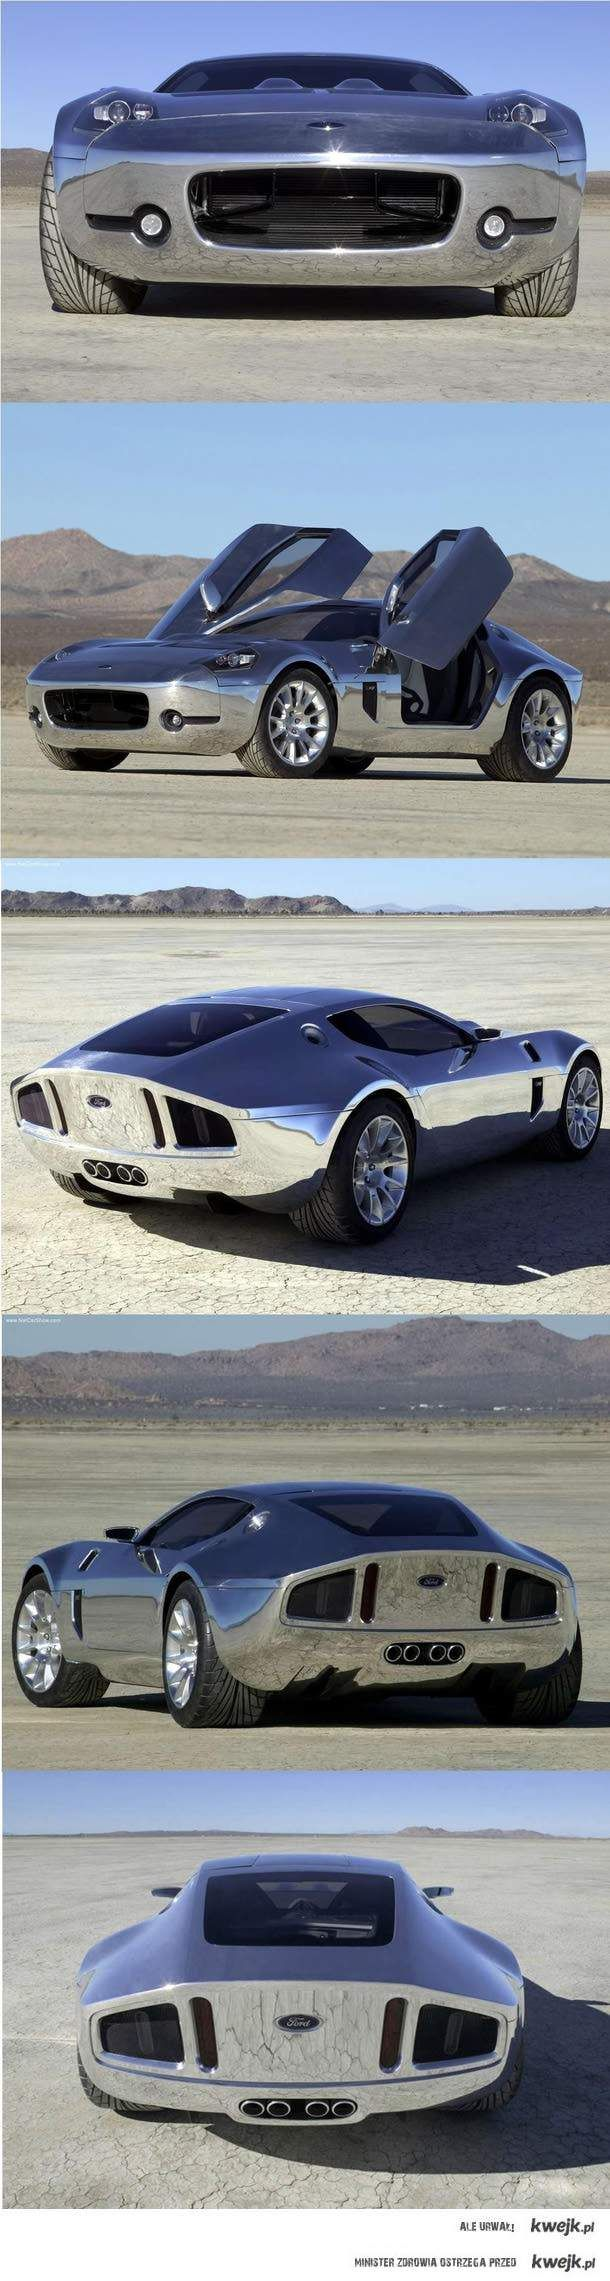 "The Ford Shelby GR-1 concept car. Build it!!! Ford's response to the ""Sting Ray""!!!"